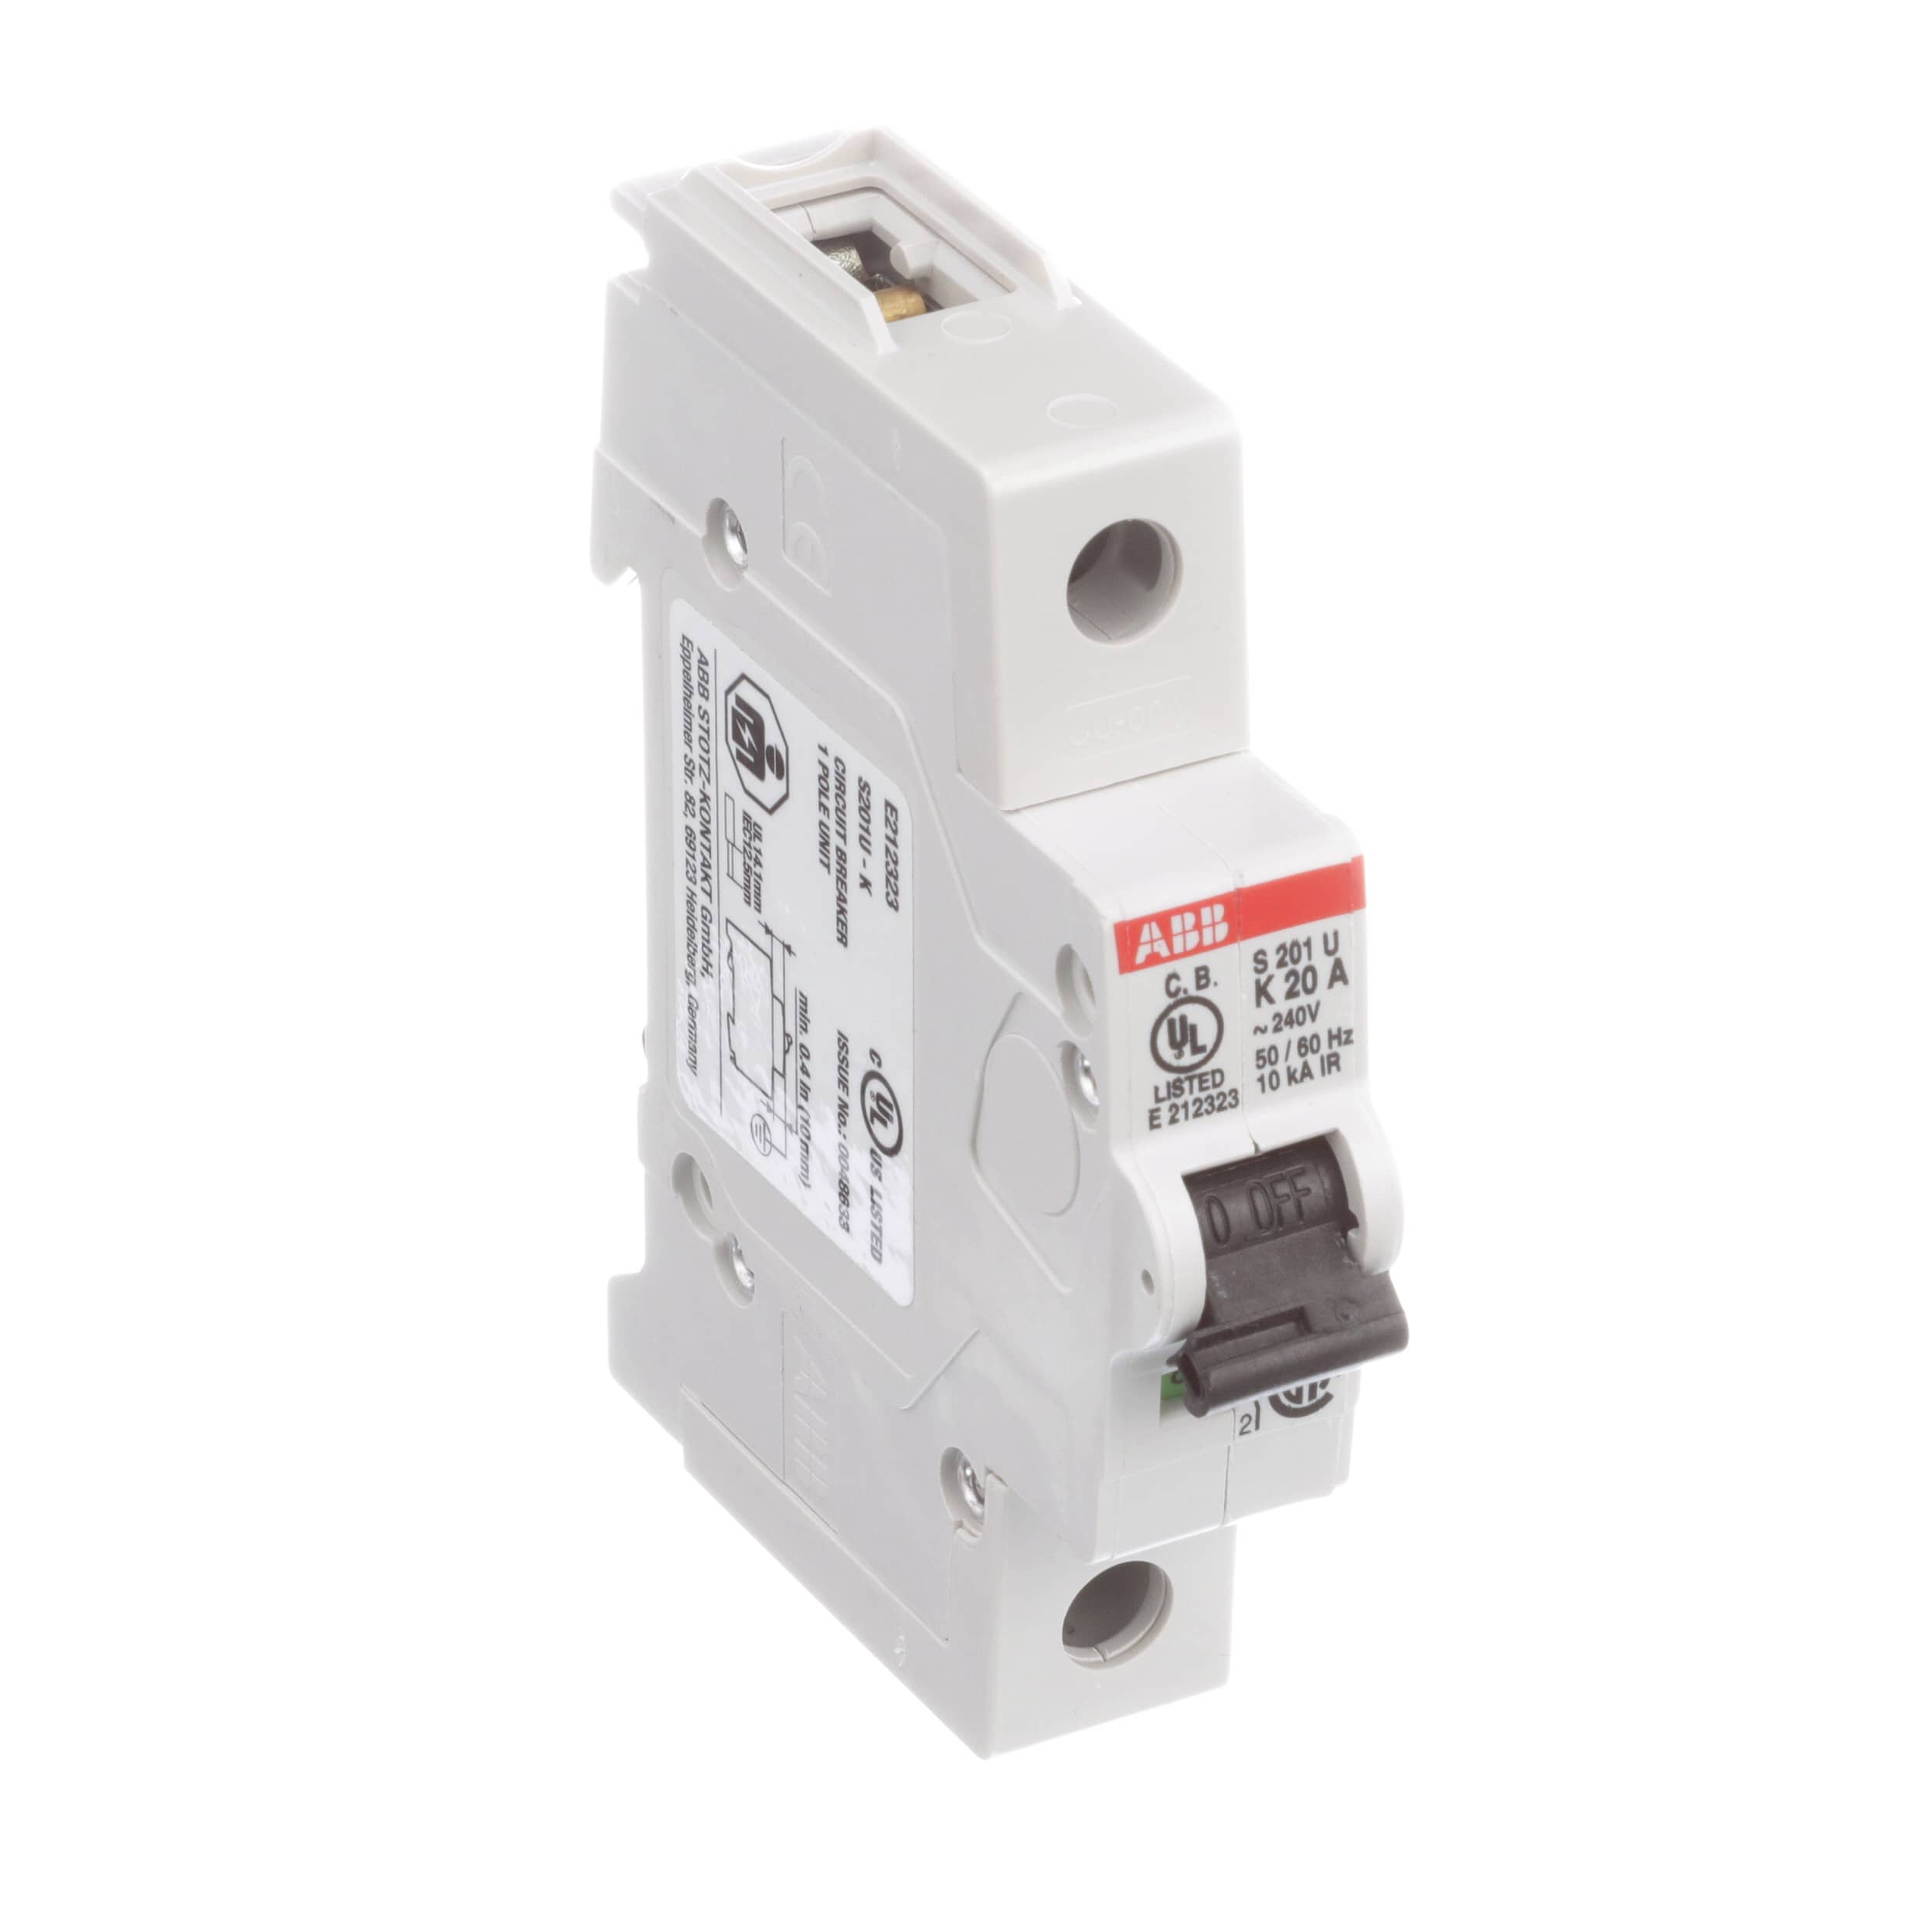 Abb S201u K20 Circuit Breaker Branch Circ Protection K Curve Under Current Relay 1 P 20a 10ka 240vac Ul489 Allied Electronics Automation